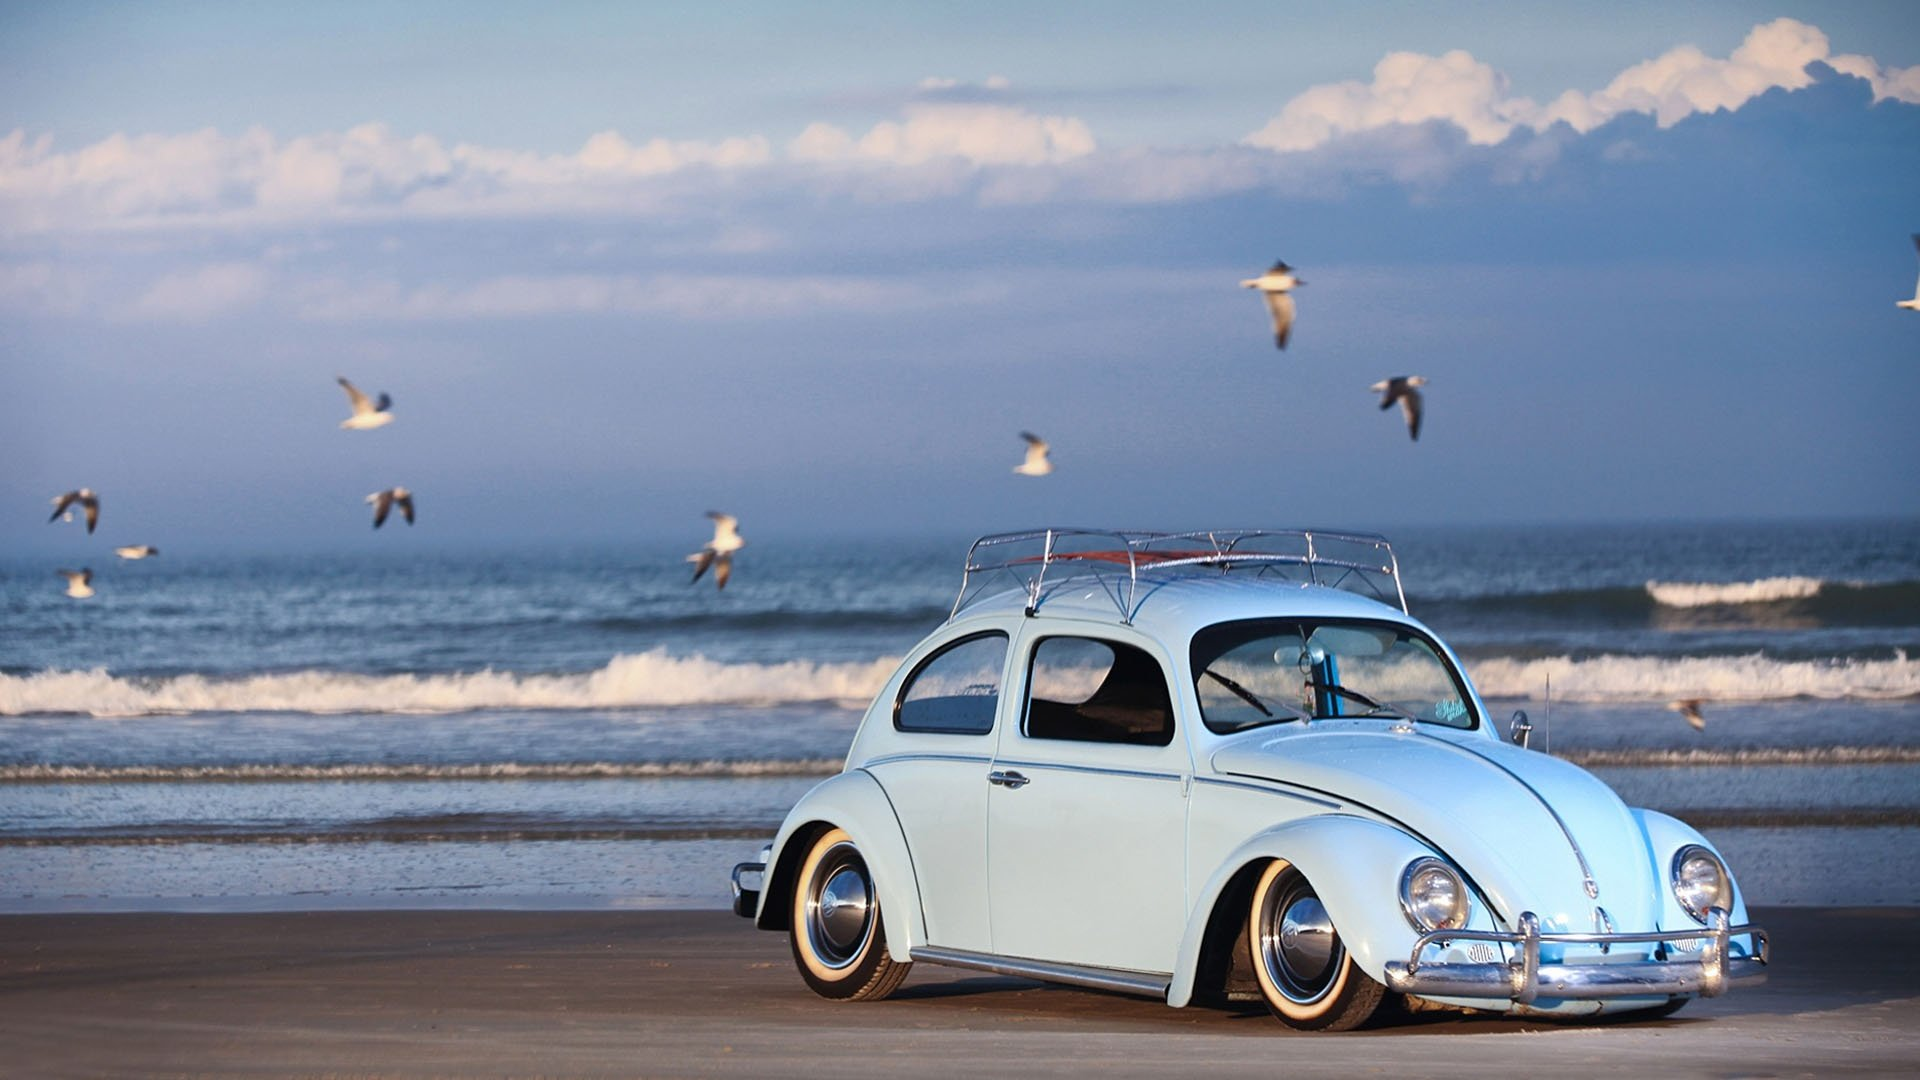 Best Volkswagen VW Wallpaper ID52820 For High Resolution Full Hd 1920x1080 Computer